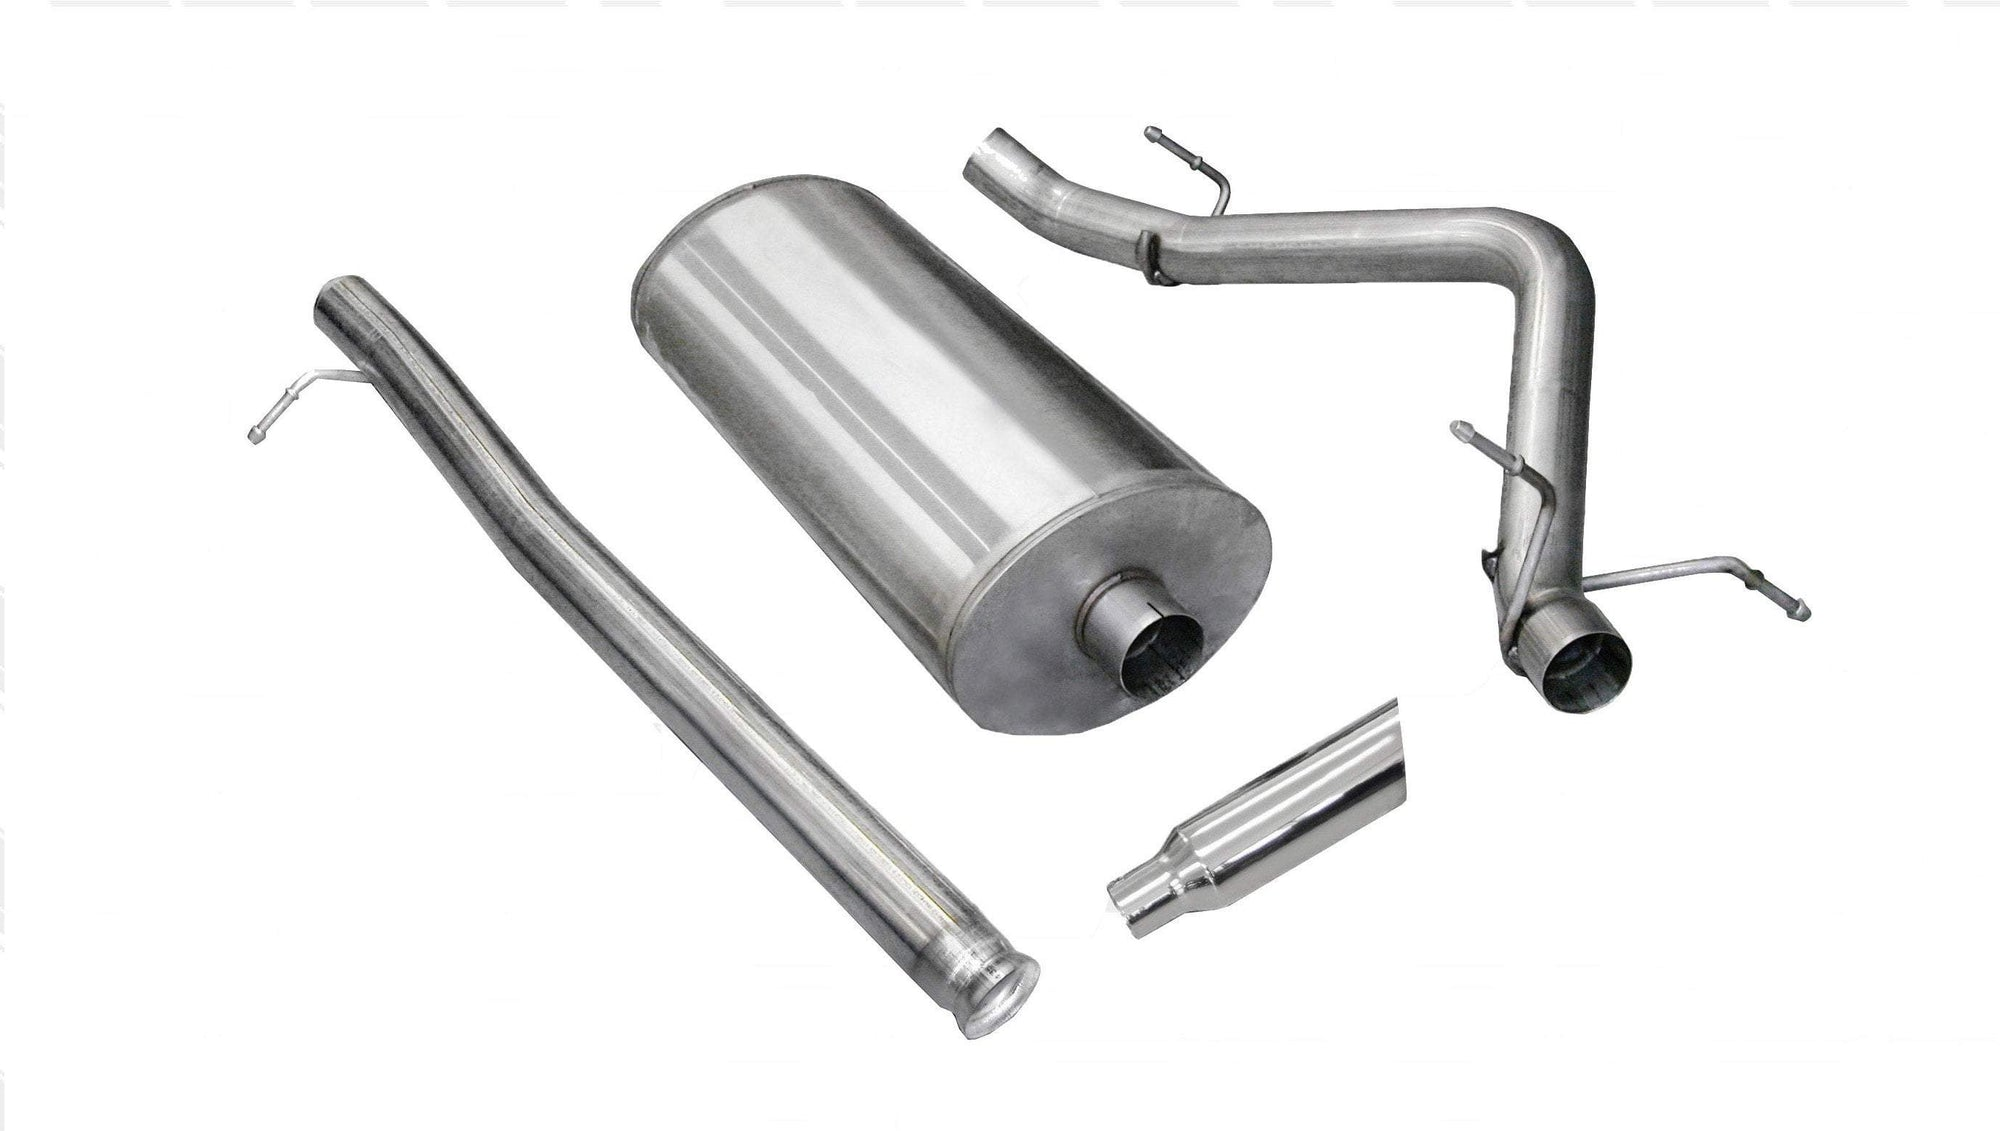 "dB Cat-Back Exhaust Polished / Sport / Single Side - Single 4in 3.0"" Single Side Exit Cat-Back Exhaust System with 4.0"" Tip (24920) Sport Sound Level"